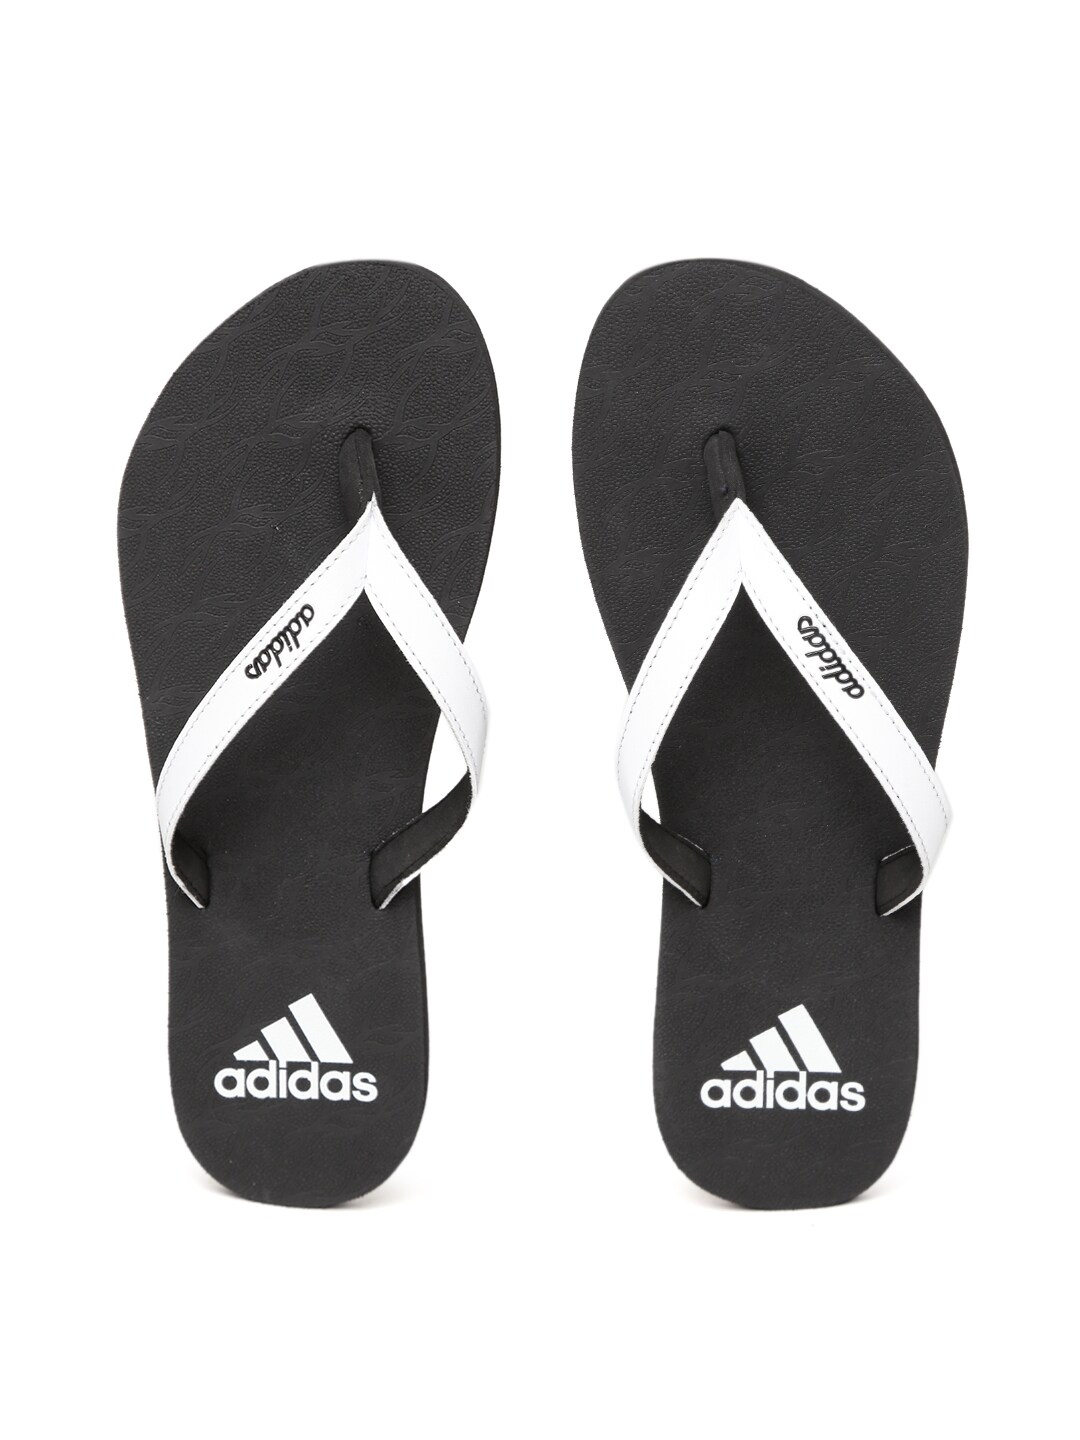 efe5fe6e4 Flip Flops Adidas Sandals - Buy Flip Flops Adidas Sandals online in India